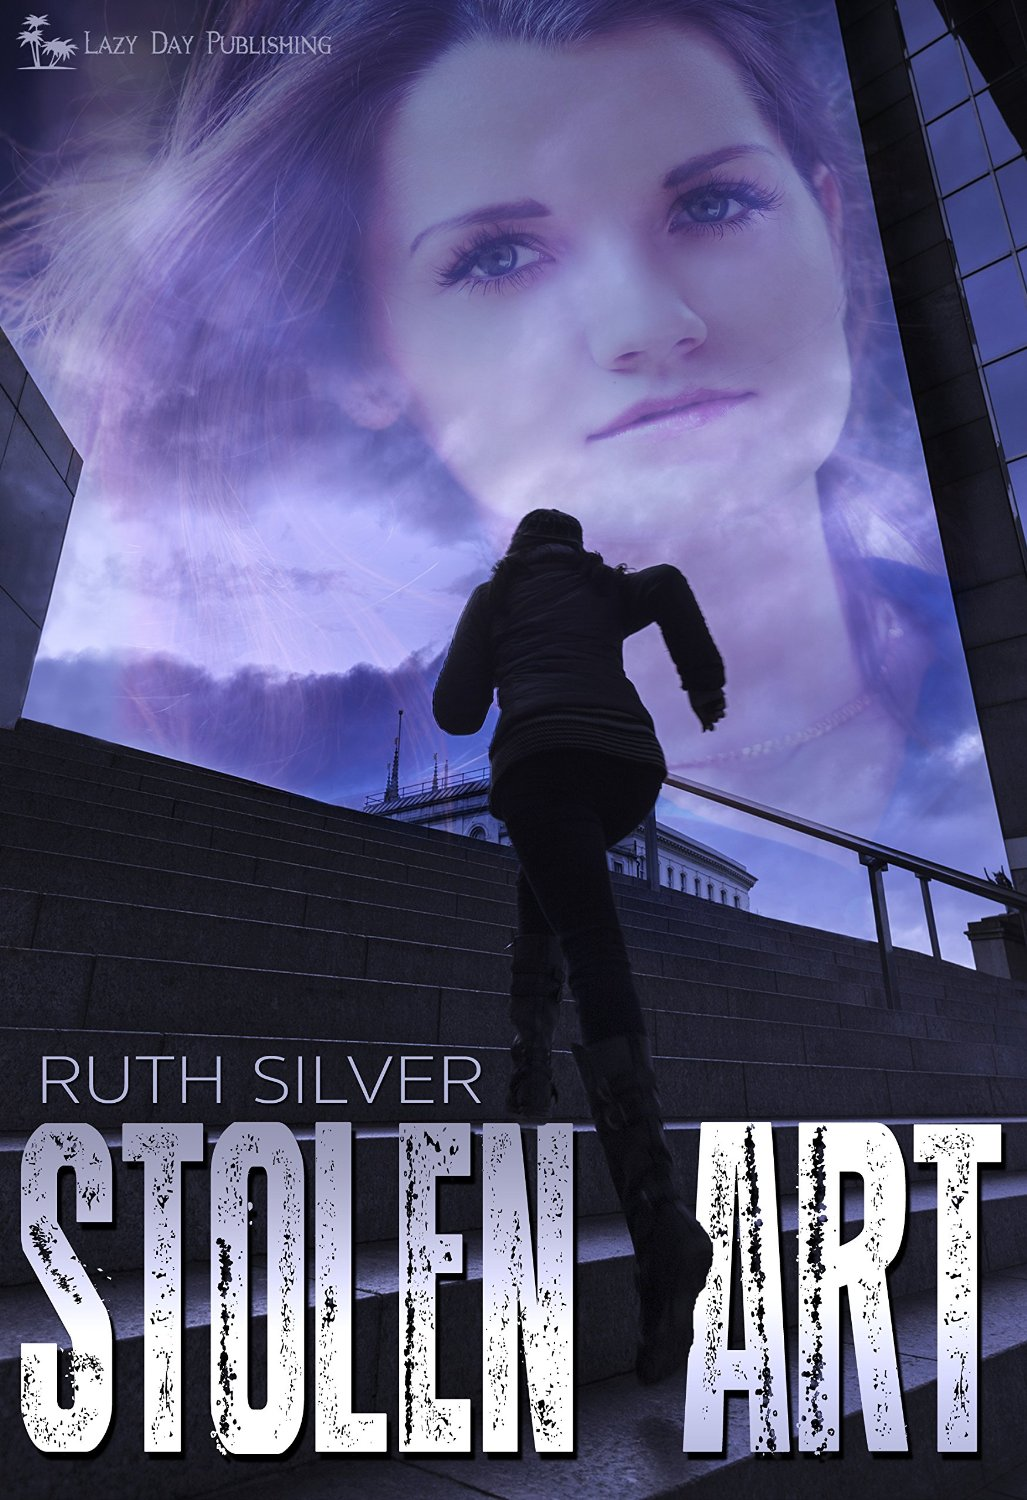 Kindle Book Missing Cover Art : Muffy wilson stolen art by ruth silver writeawaybliss